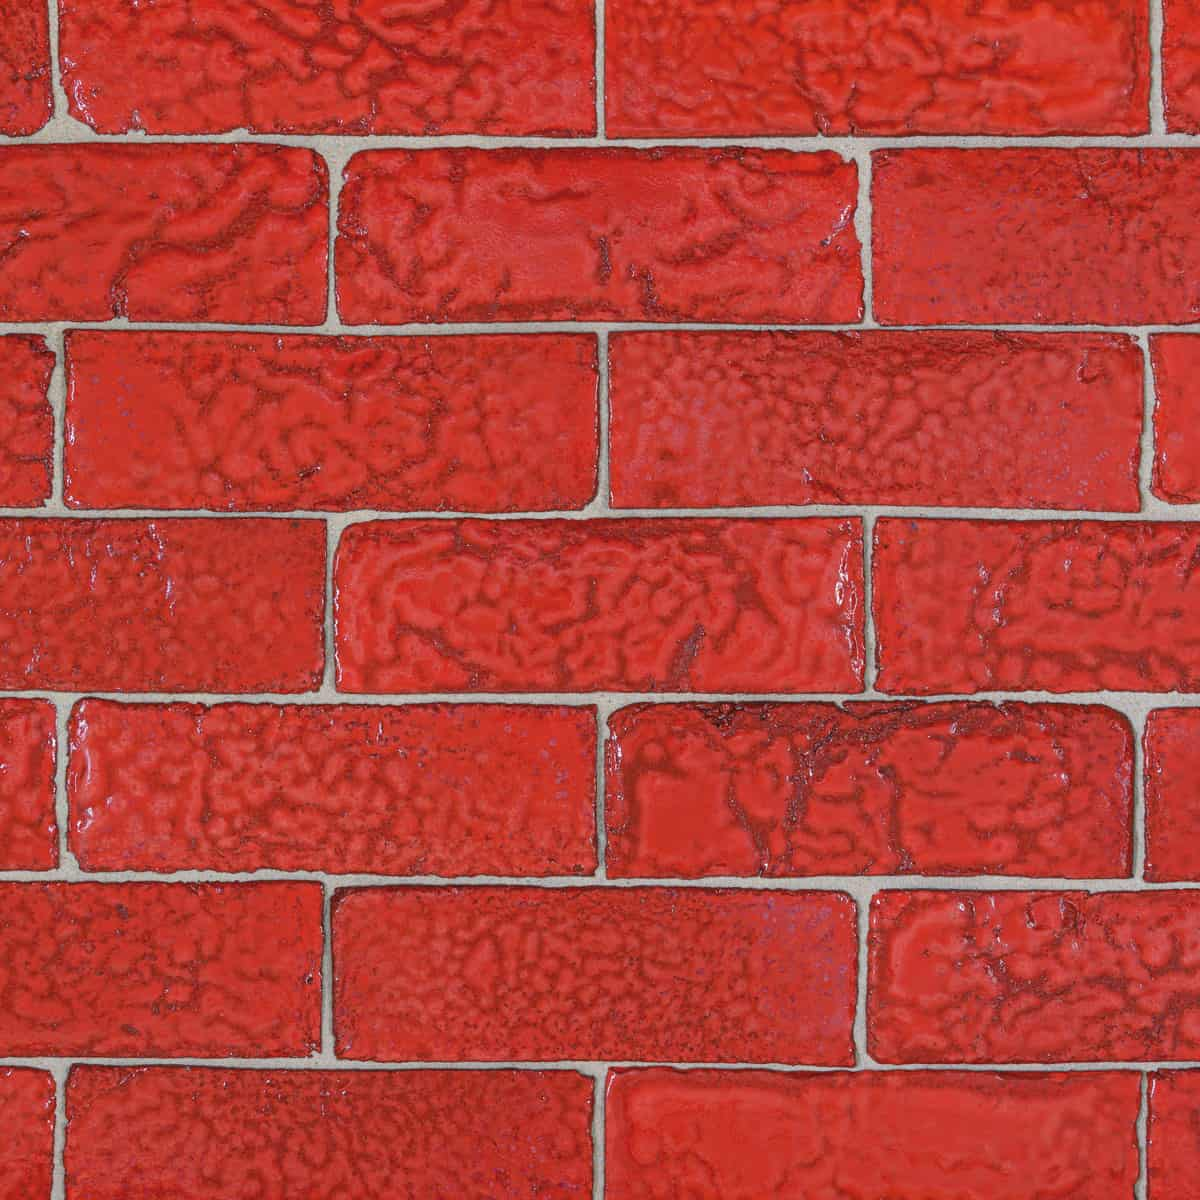 Manchester Brick Specialists